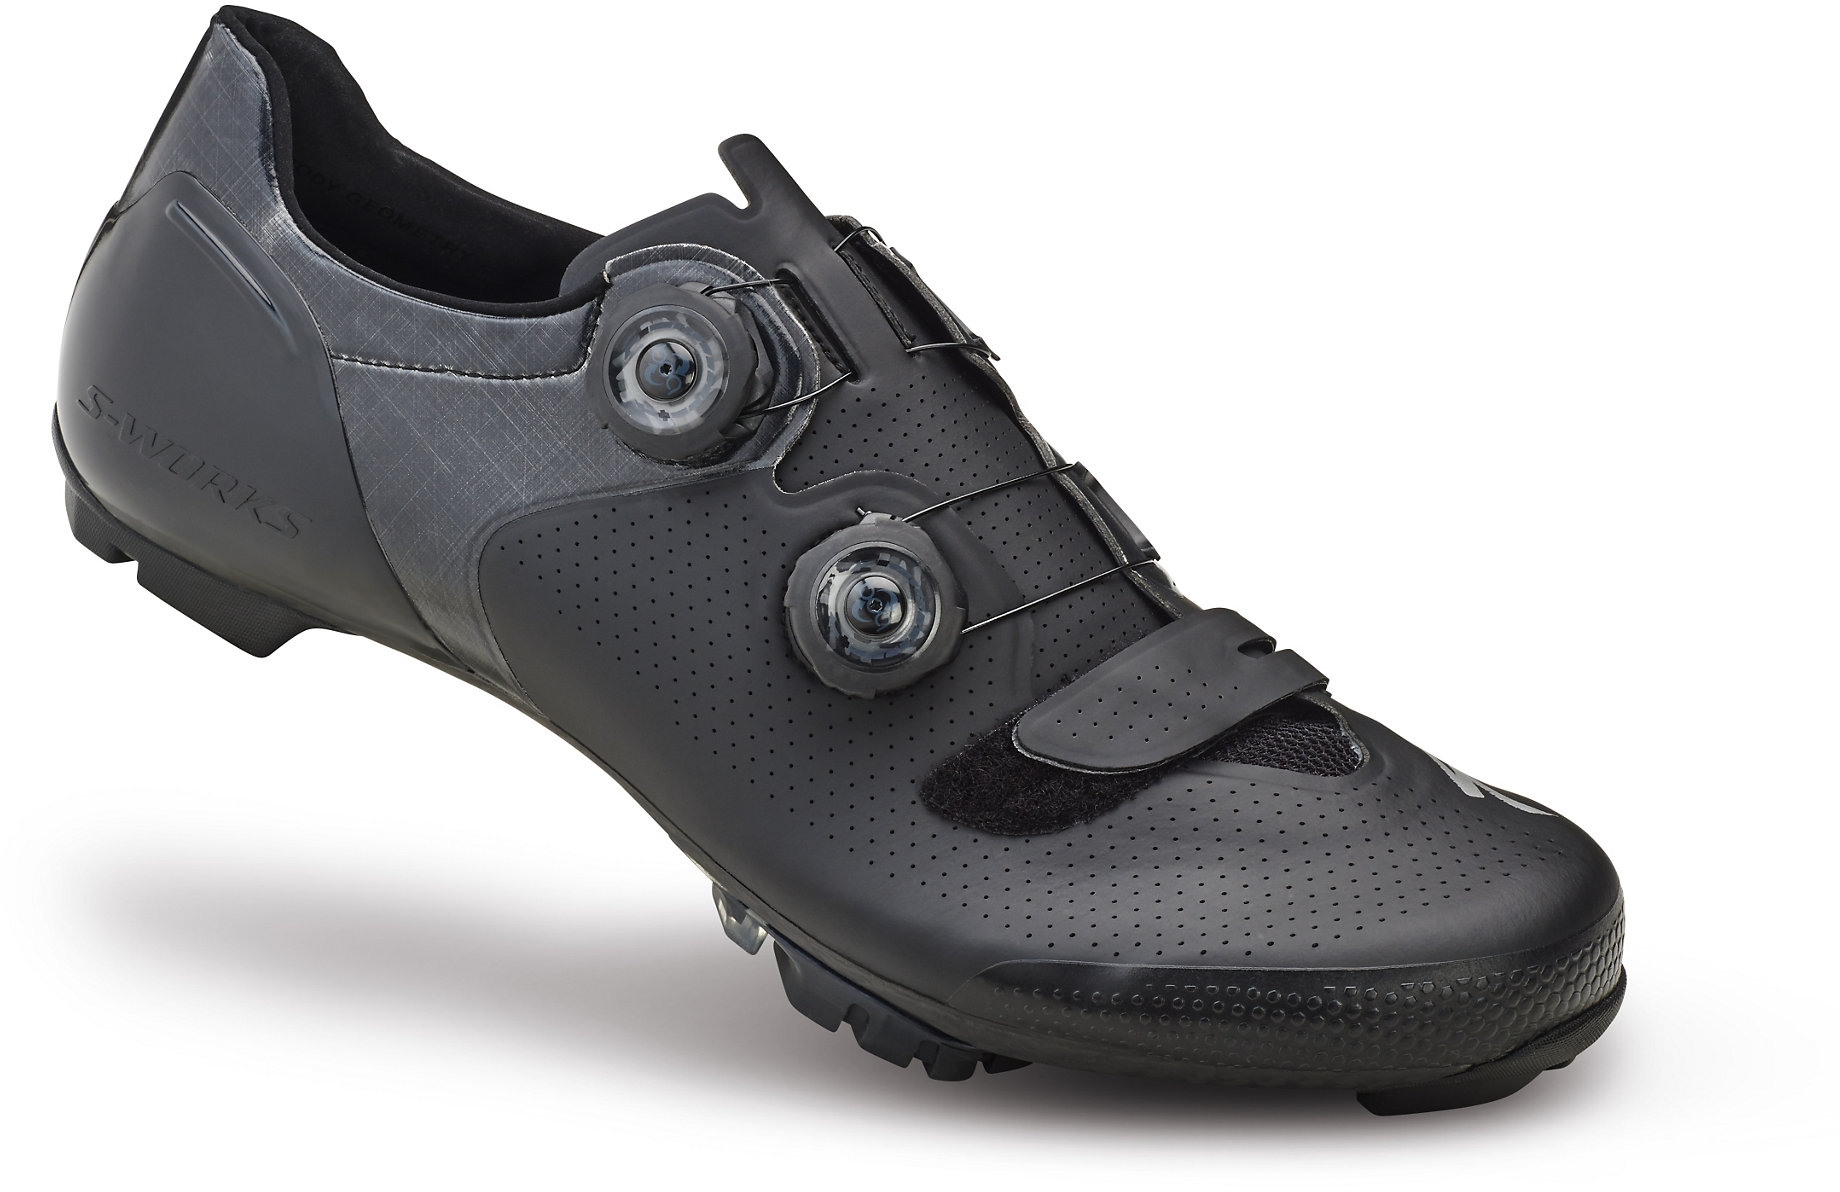 Adventure Race Shoes Reviews